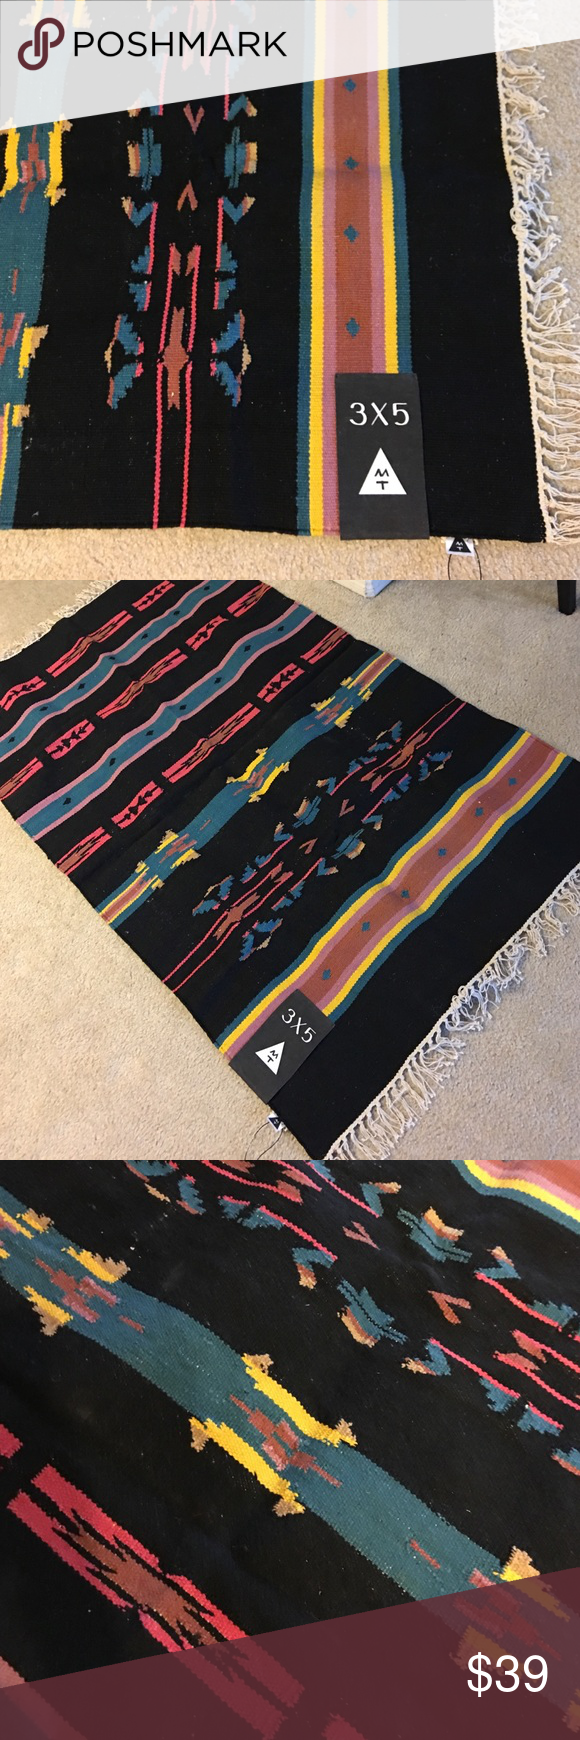 Aztec Rug No Trades New with tags attached. Rug is 3 x 5 feet. Brand Magical Thinking from UO Urban Outfitters Other